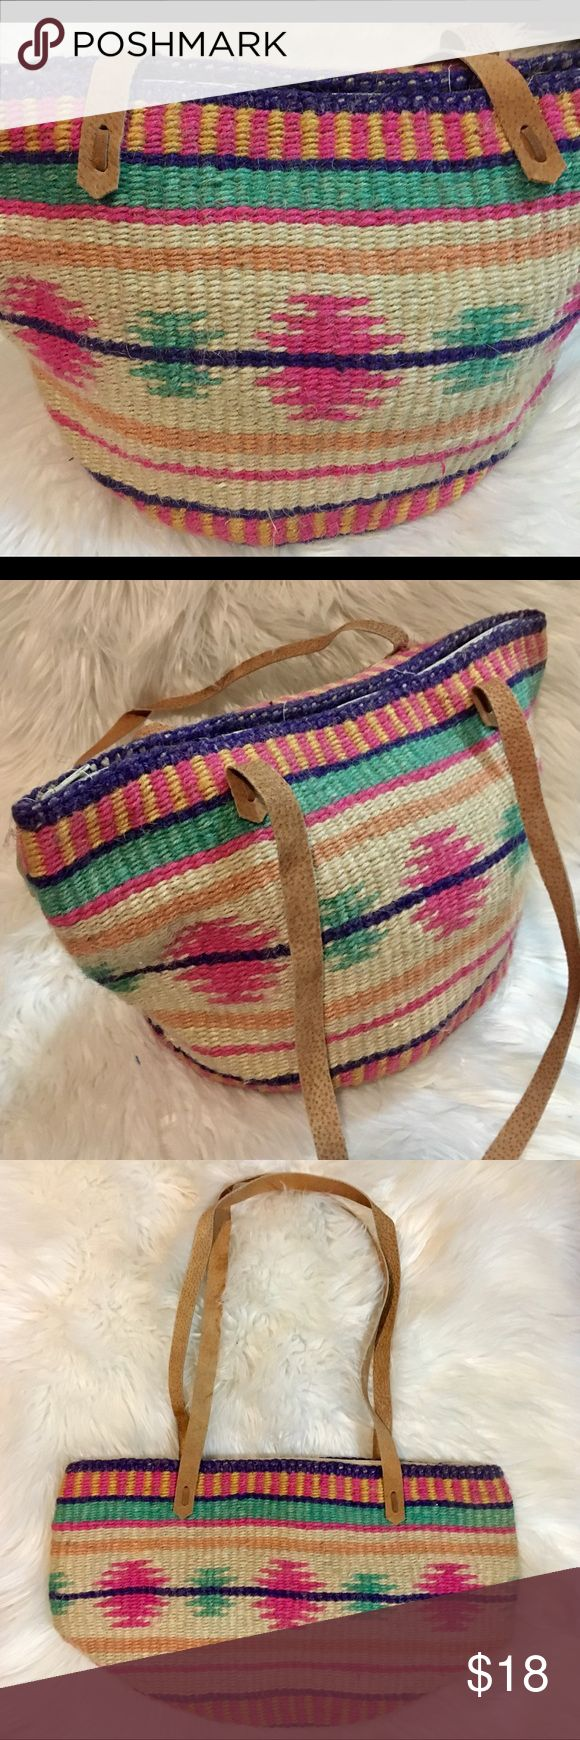 Cute Boho tote bag NWOT Aztec print woven tote bag. New never used perfect condition. Bags